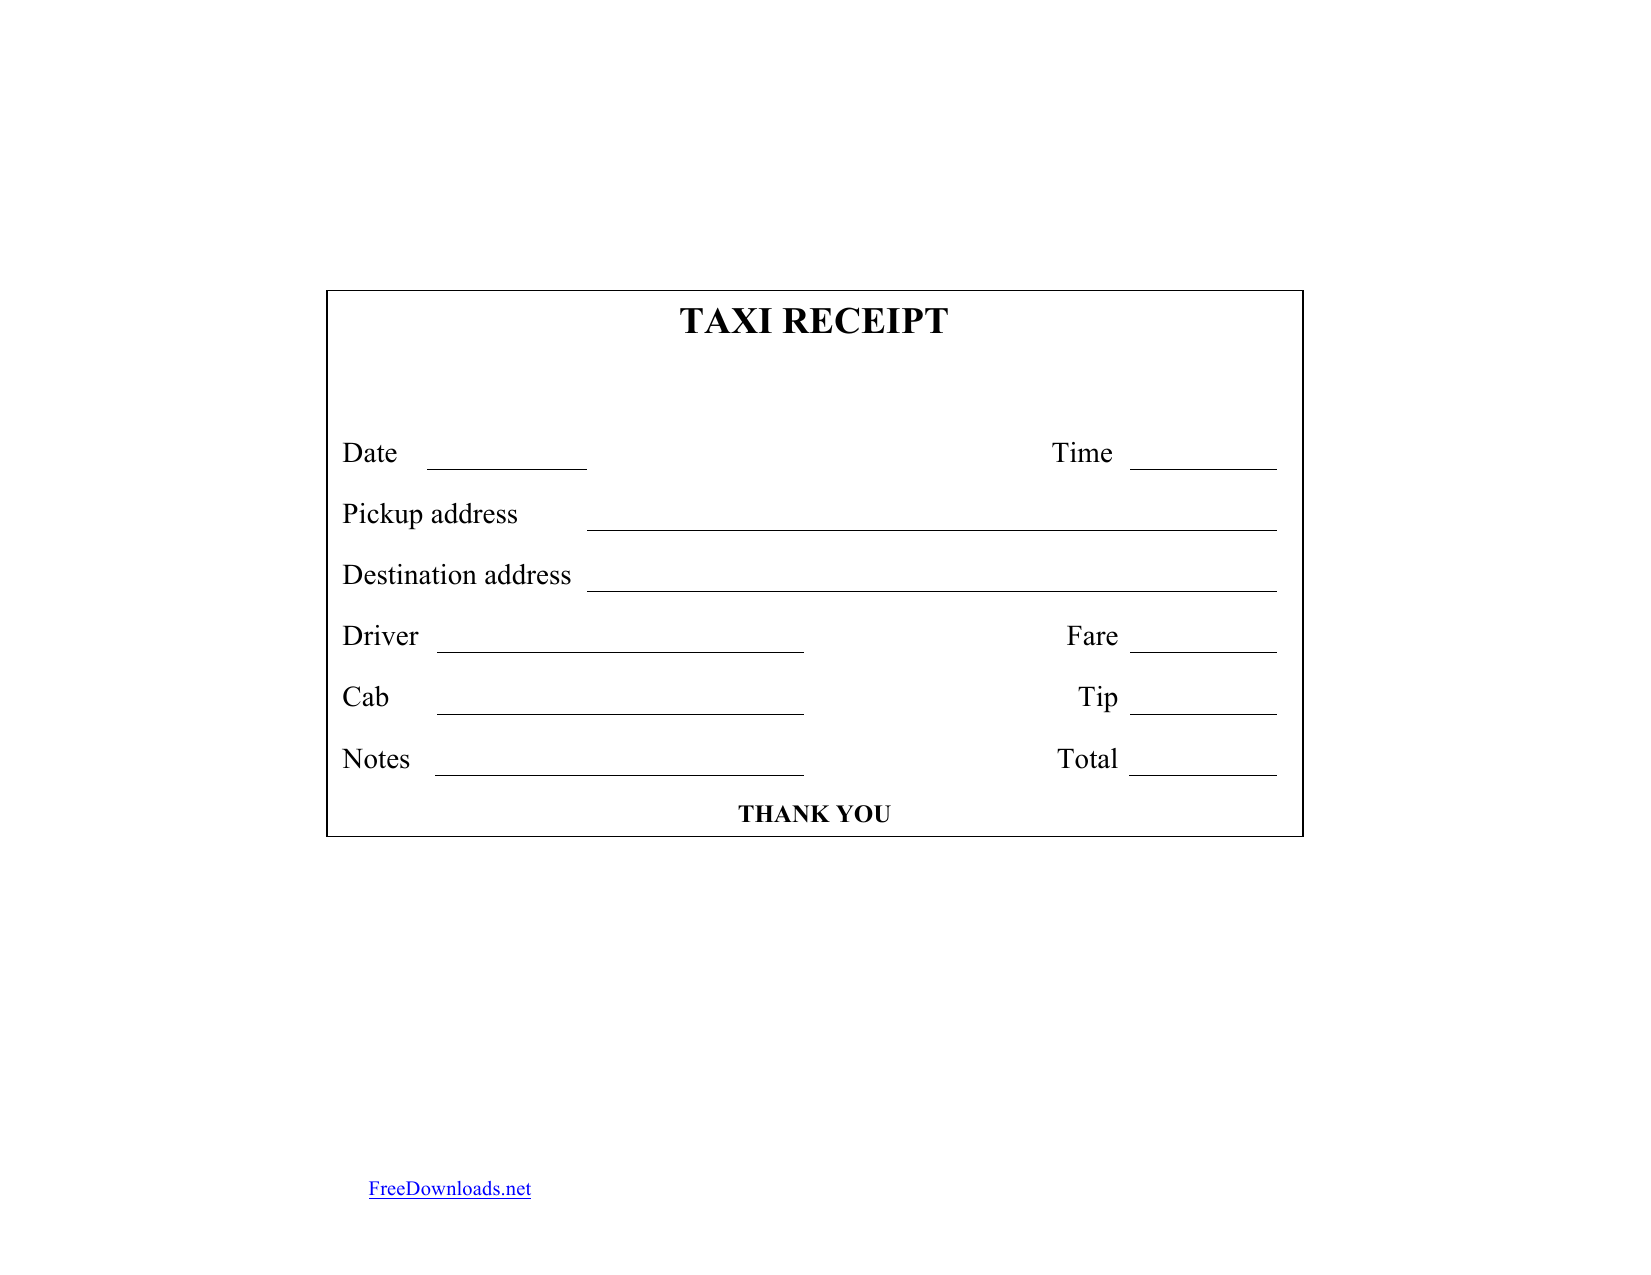 download blank printable taxi cab receipt template excel pdf rtf word. Black Bedroom Furniture Sets. Home Design Ideas